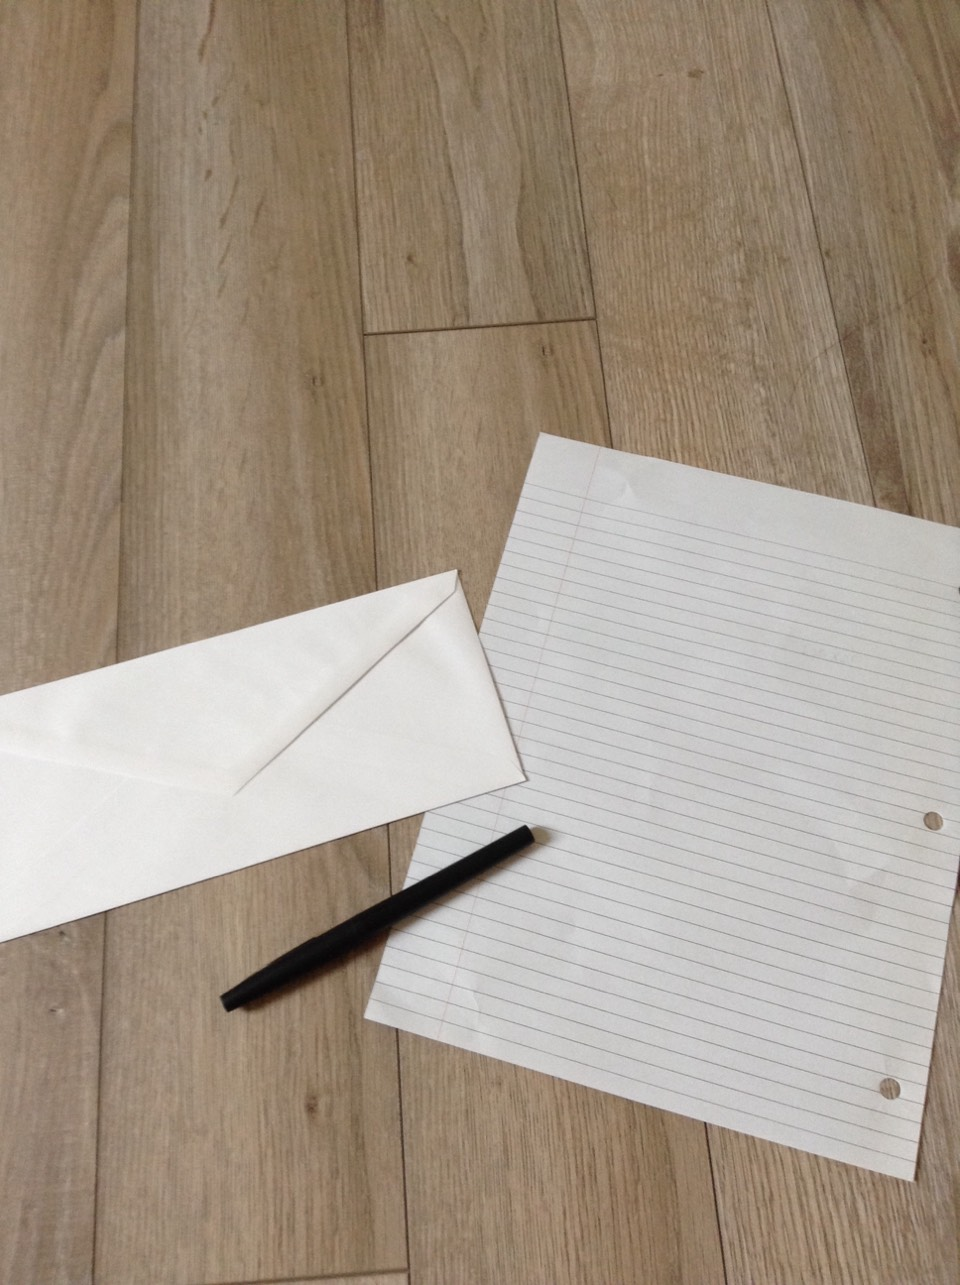 The things you will need are lined paper, an envelope and a pen!